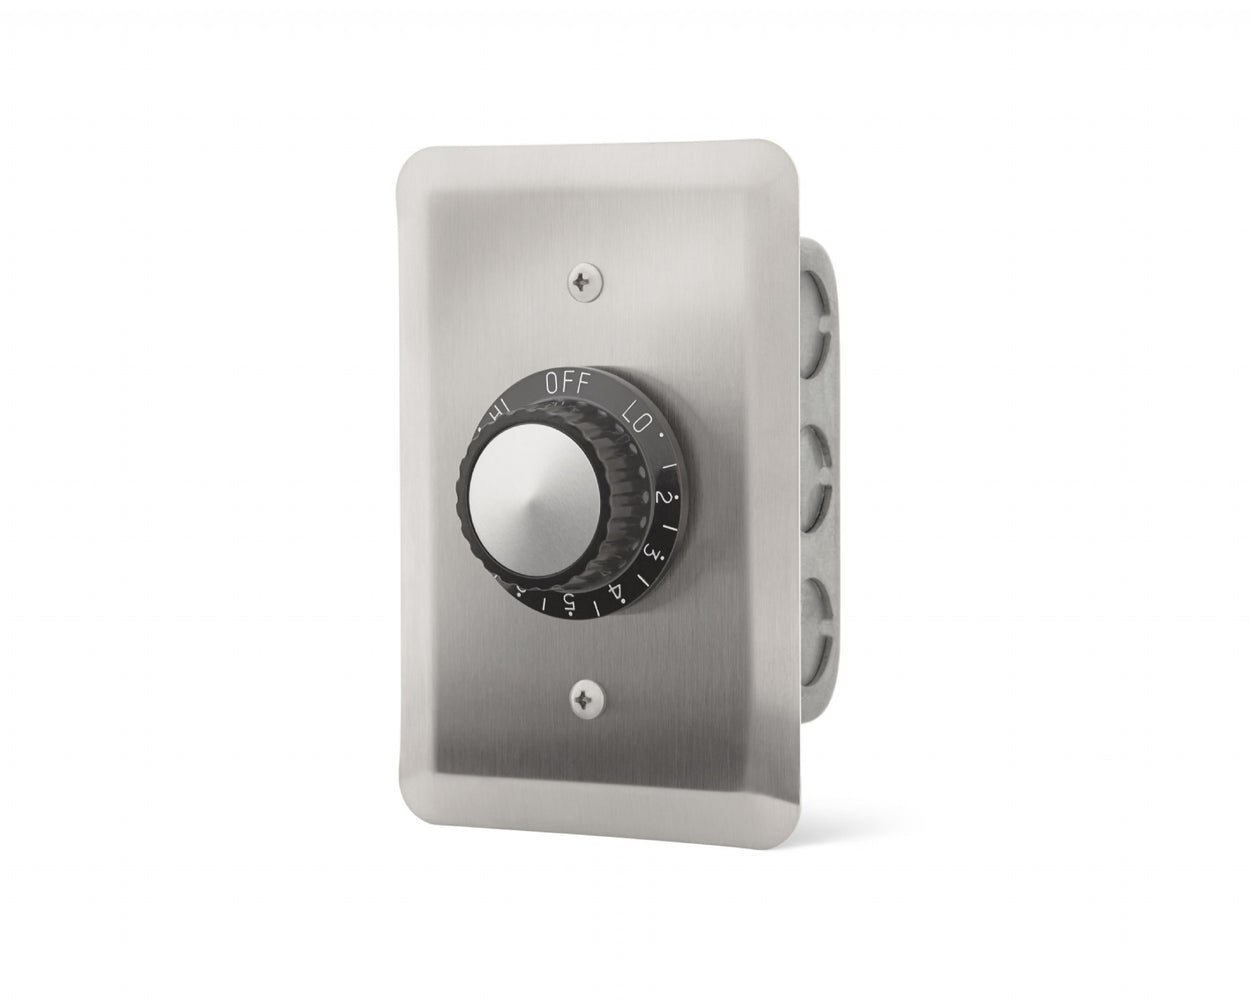 INFRATECH SINGLE REGULATOR W/ STAINLESS STEEL WALL PLATE | Outdoor Heating NZ | Infratech | Outdoor Concepts NZ